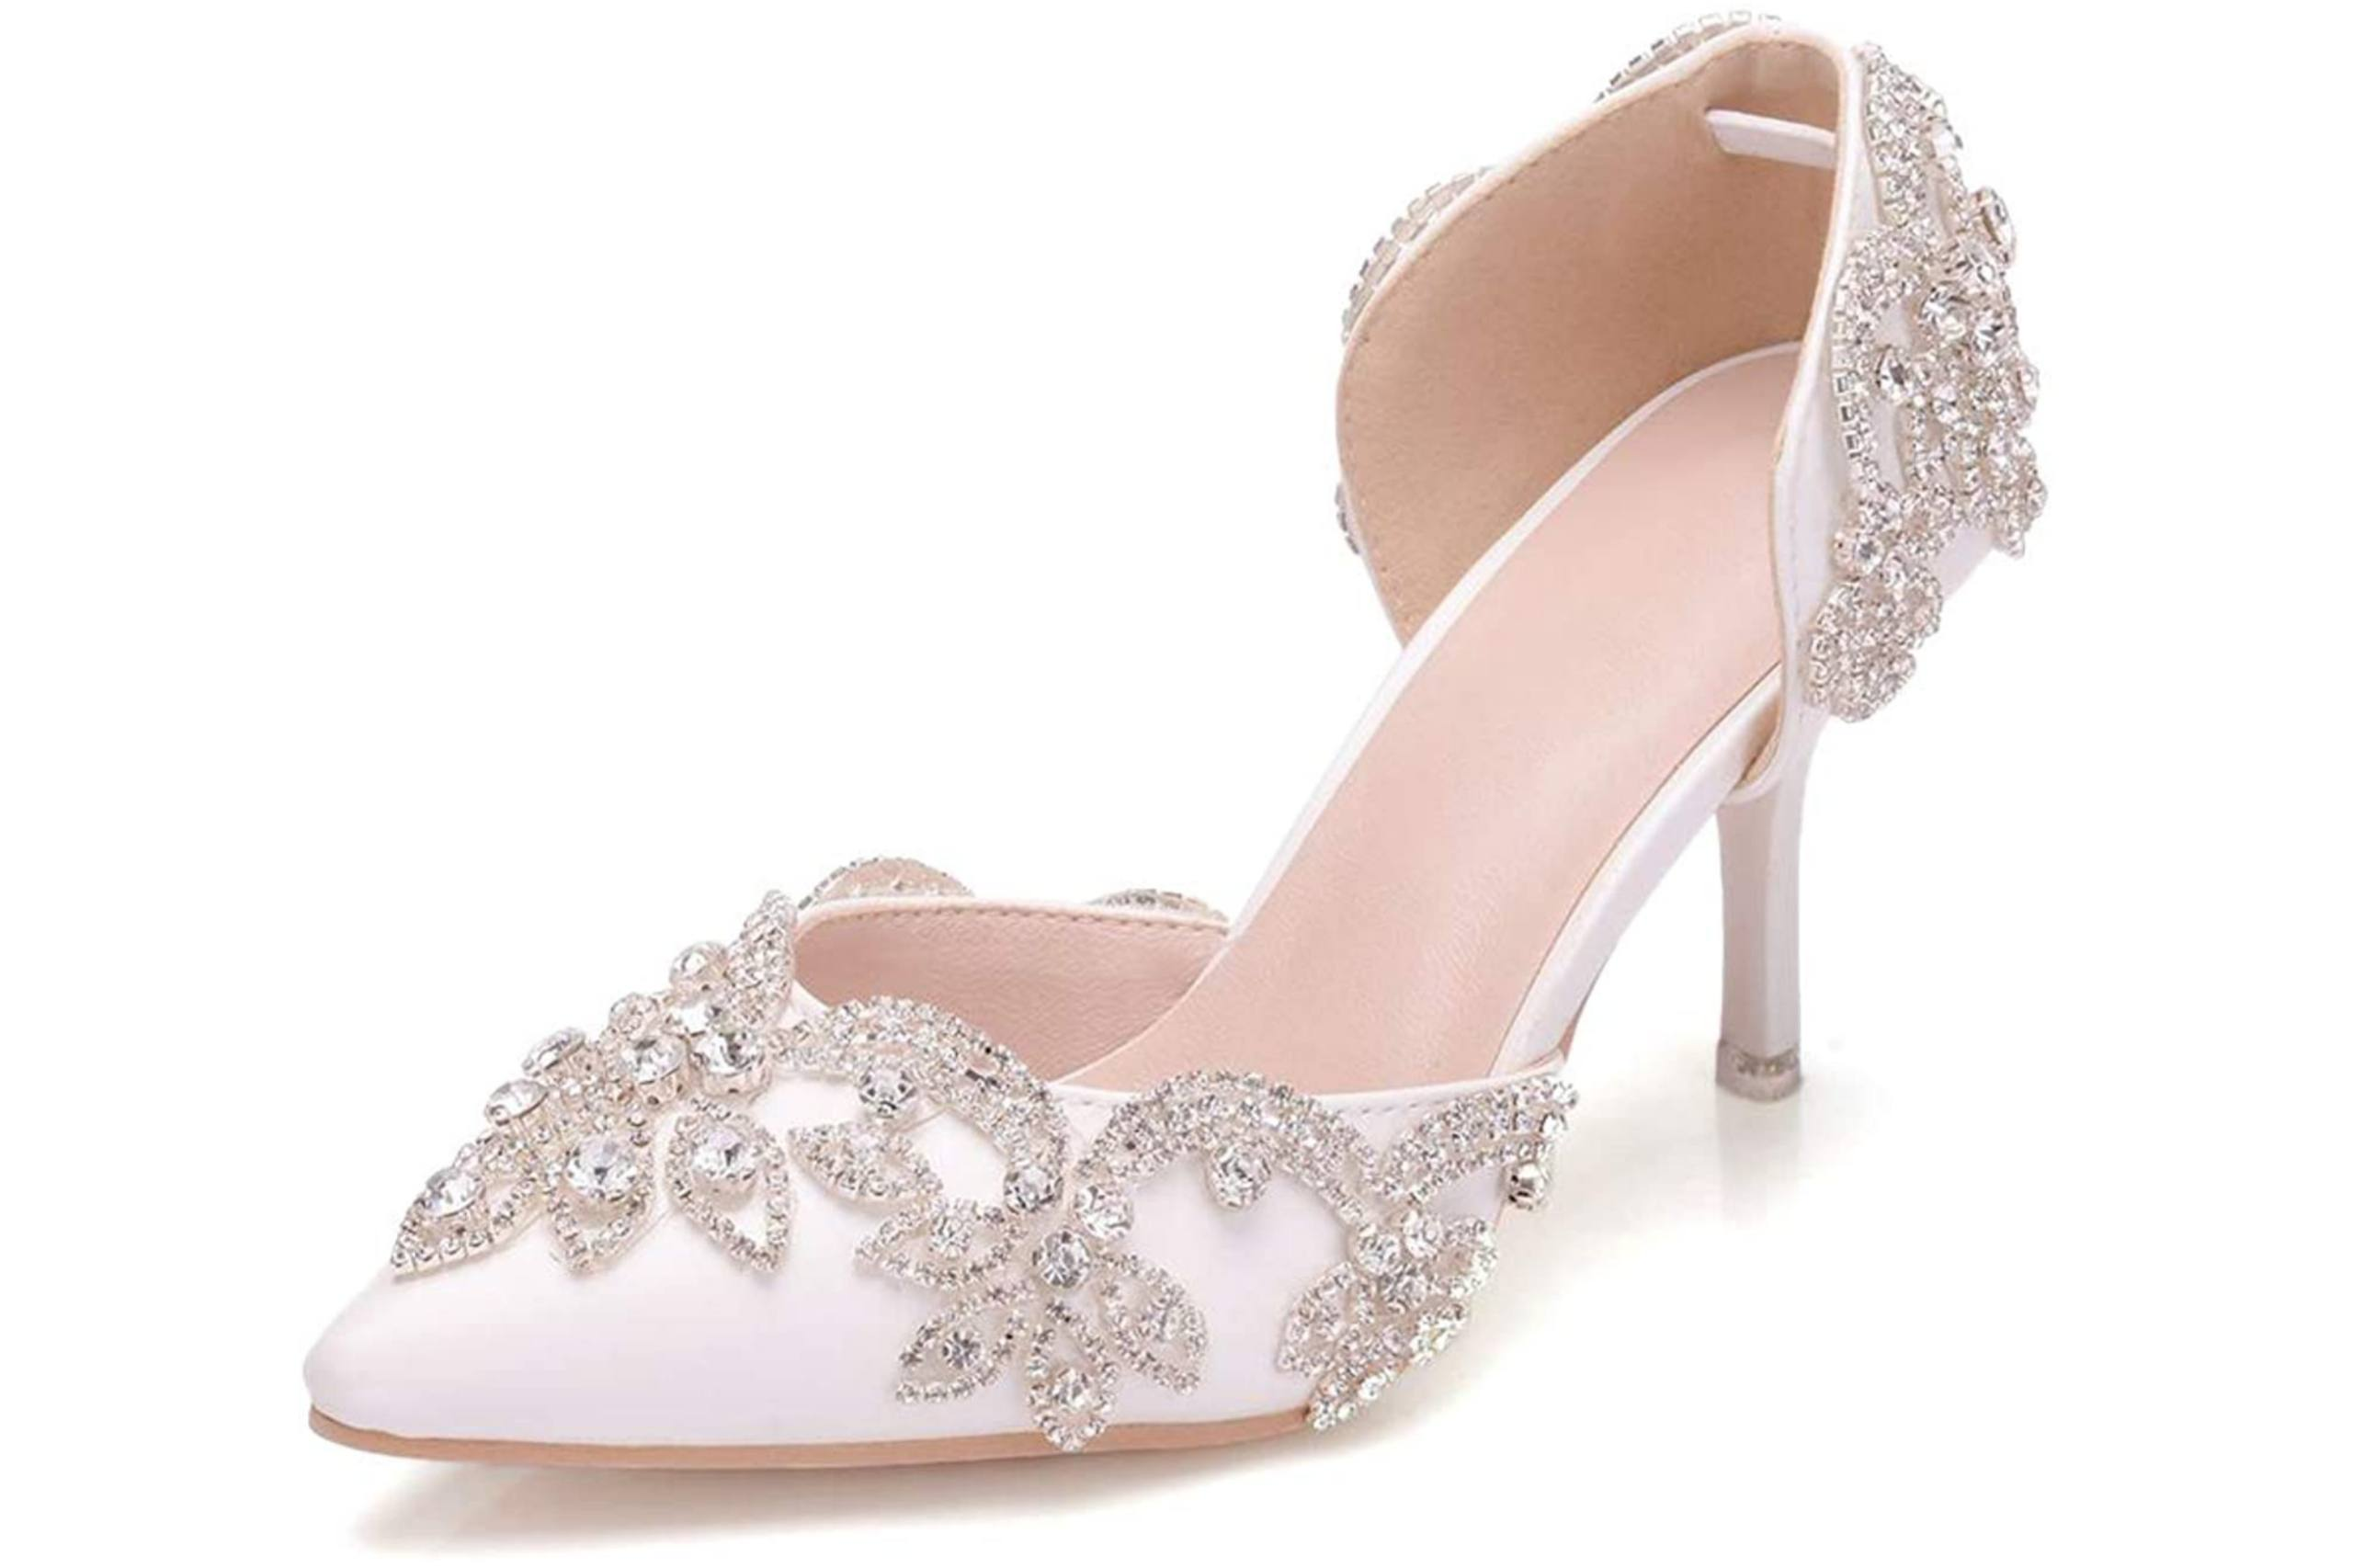 Best low heel closed toe shoe for brides